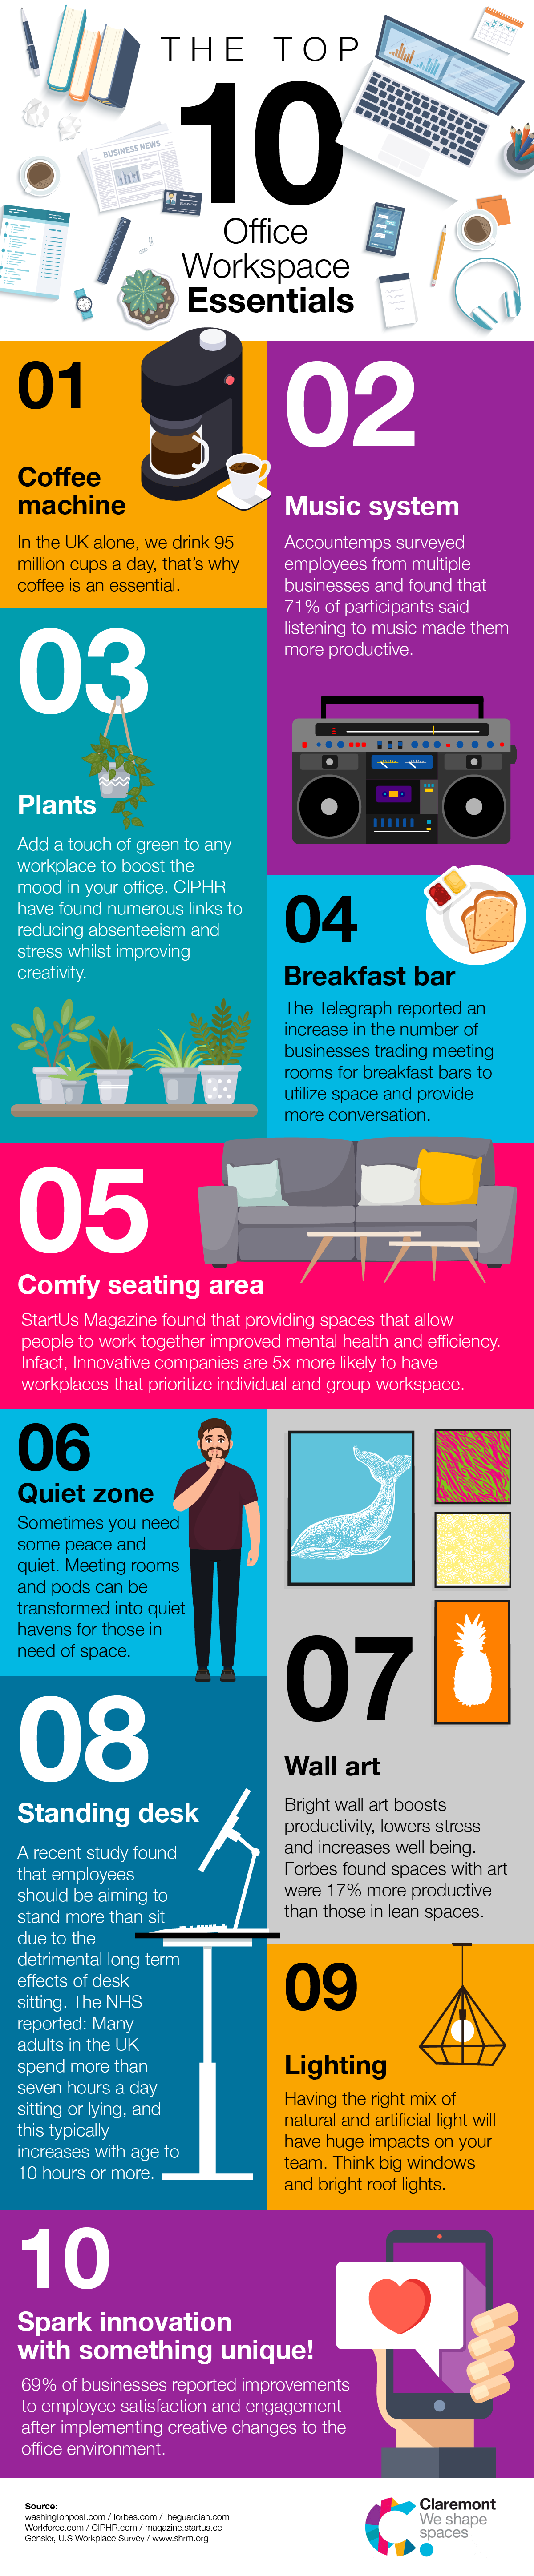 top-office-workspace-essentials-infographic-plaza